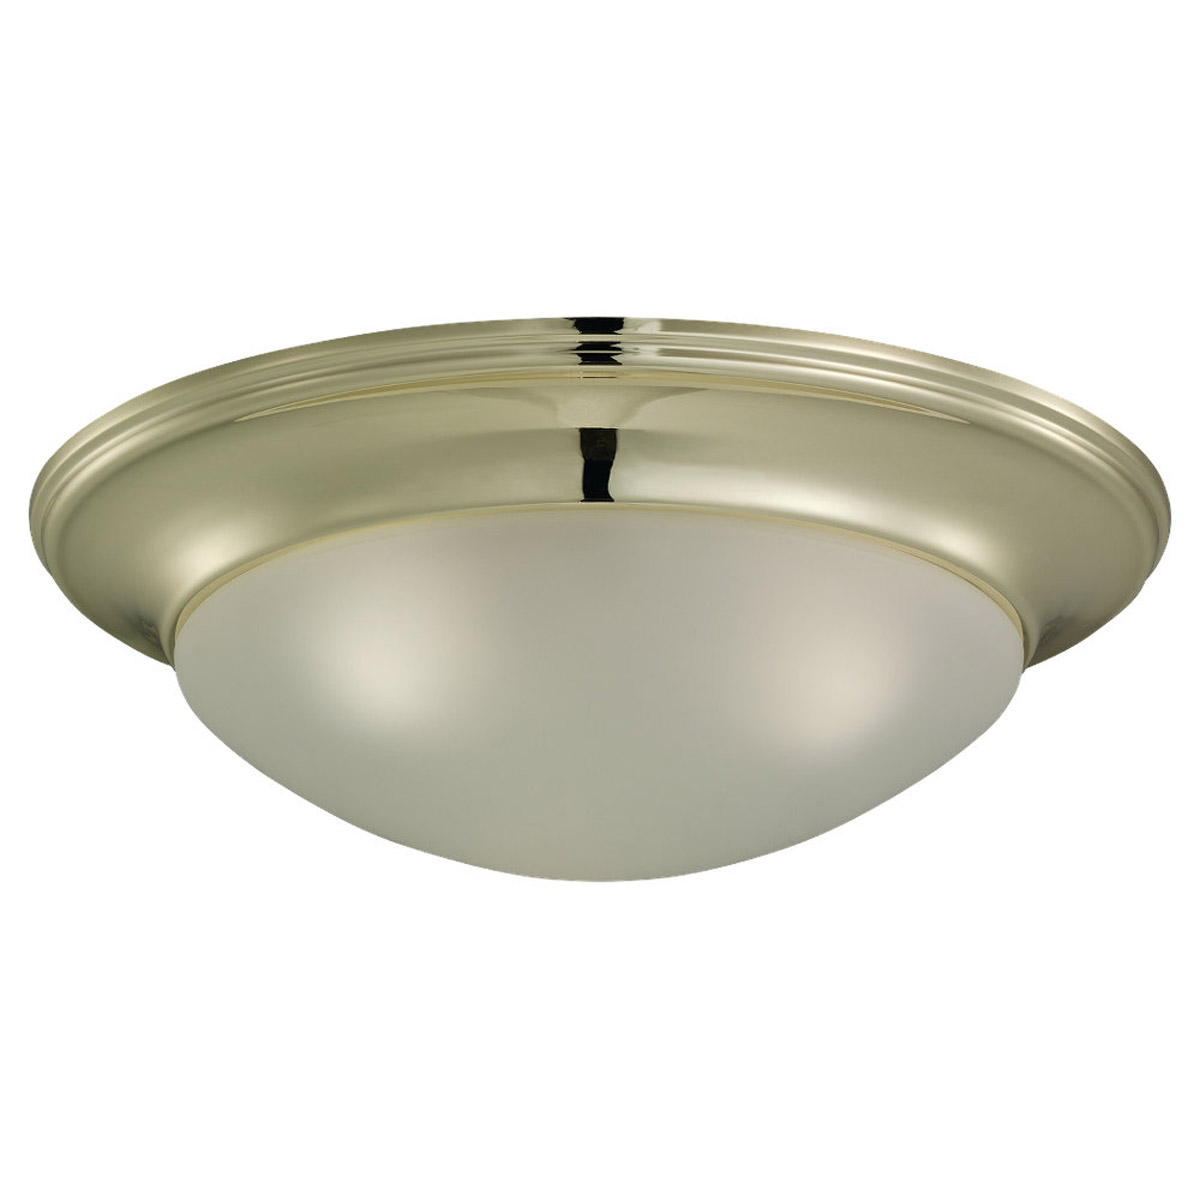 Sea Gull Lighting Nash 3 Light Flush Mount in Polished Brass 75436-02